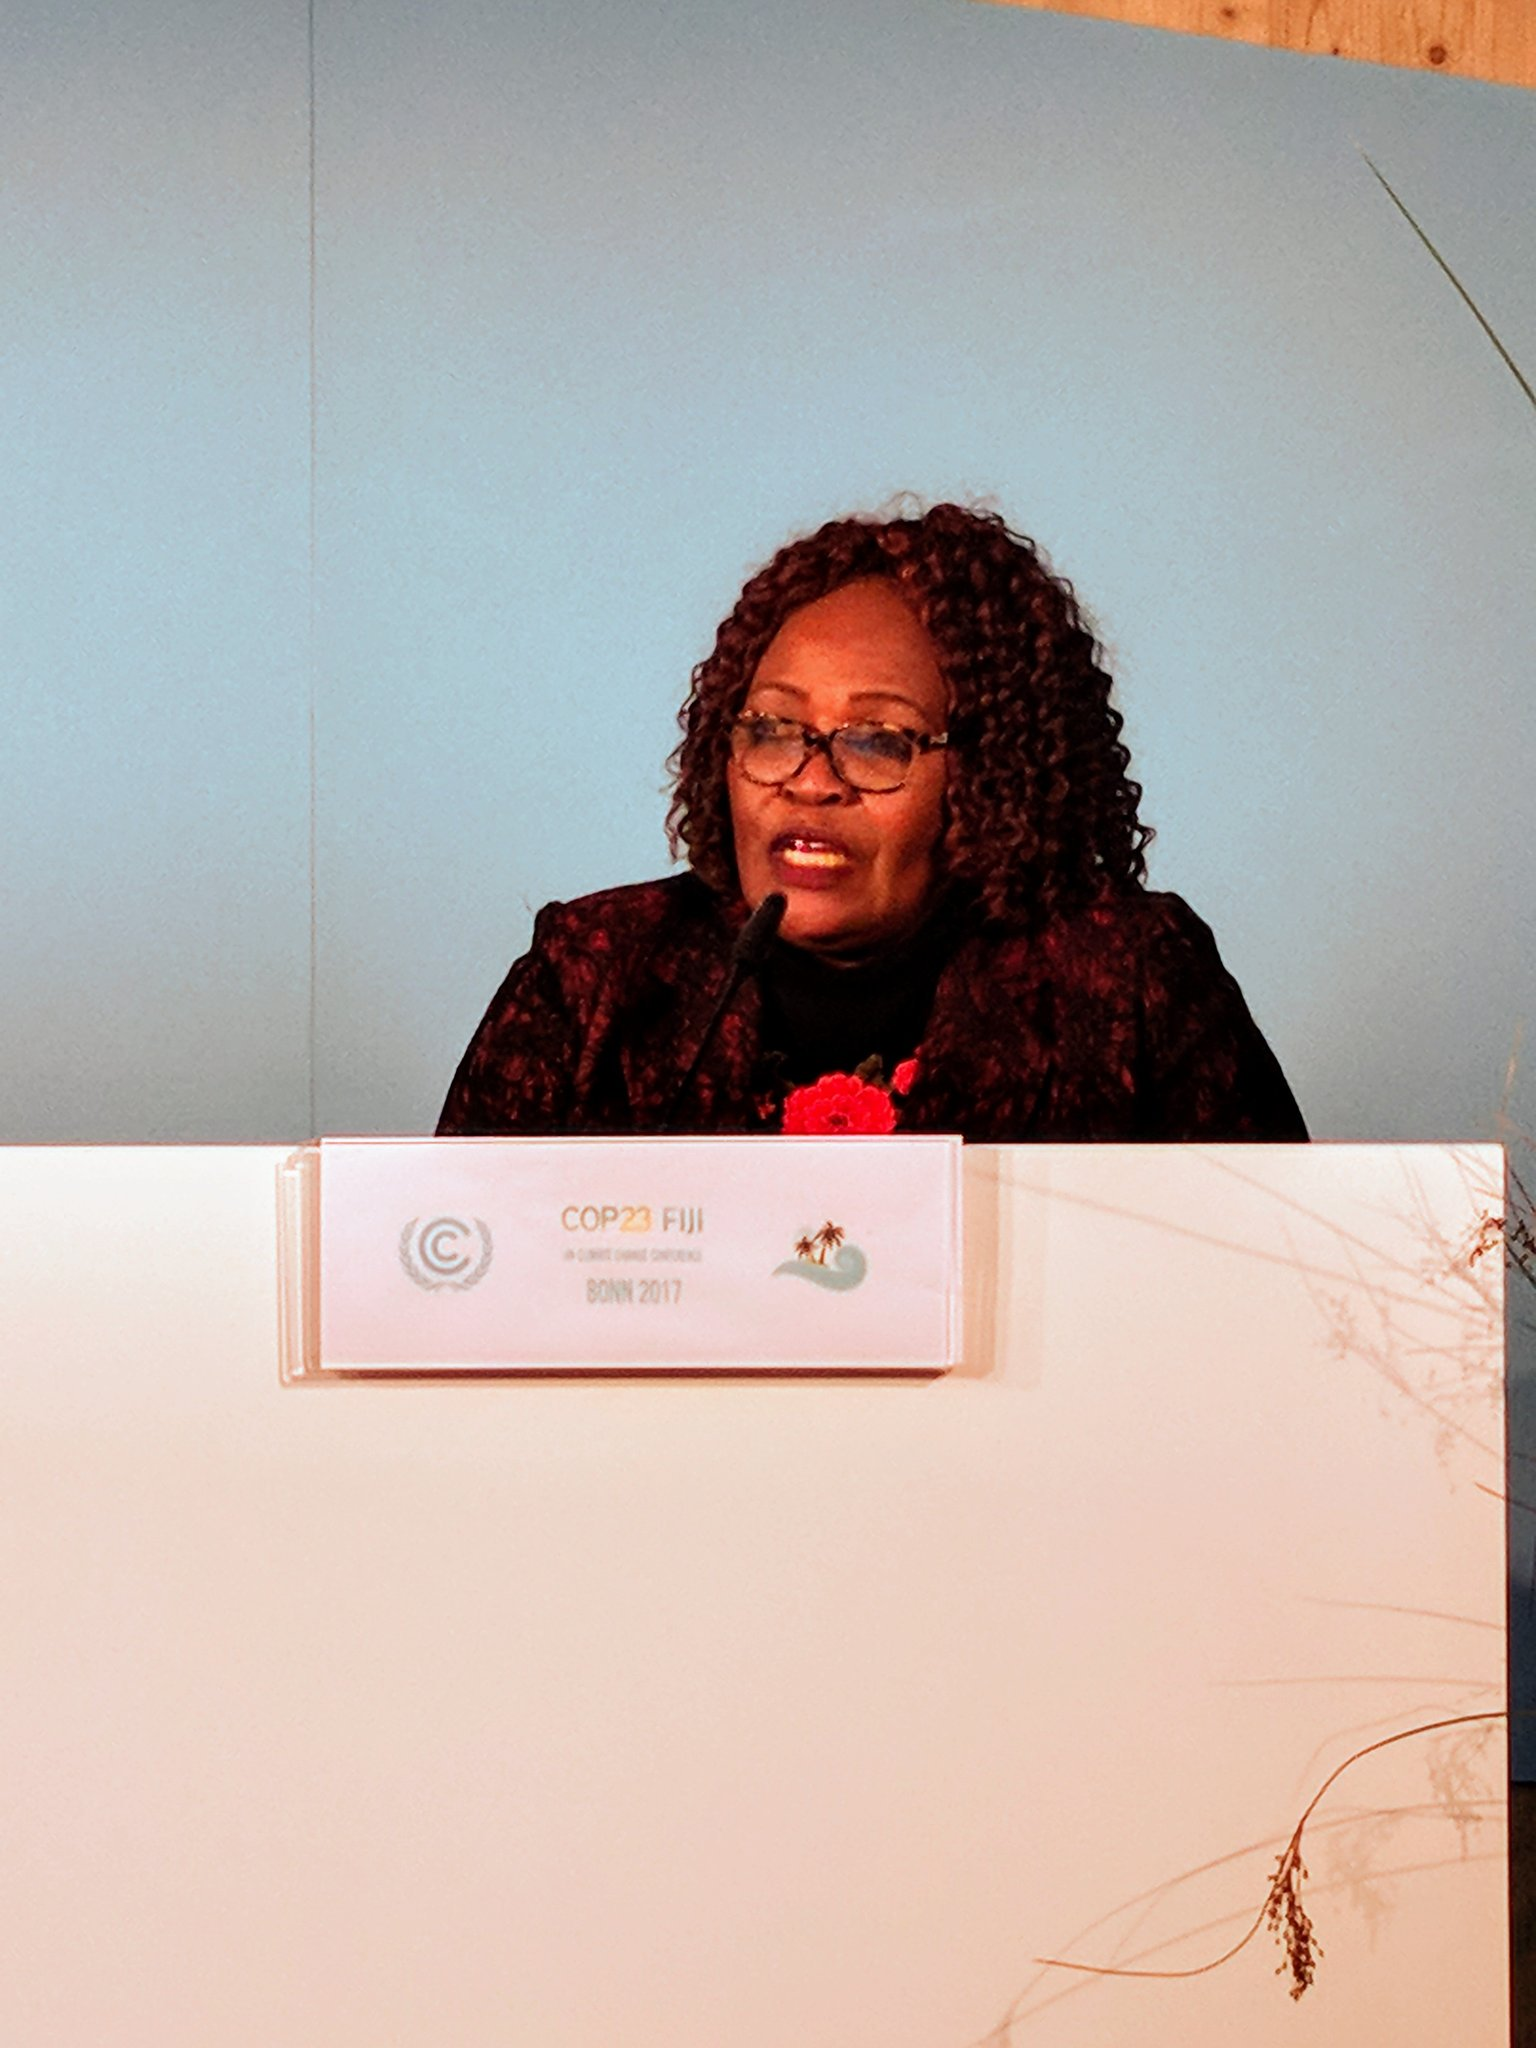 Lucy Ssendi talks about how Tanzania has benefited from decentralised climate funds & being accredited by the #gcf is a benefit as well. #COP23 https://t.co/DvvOTh4I8j